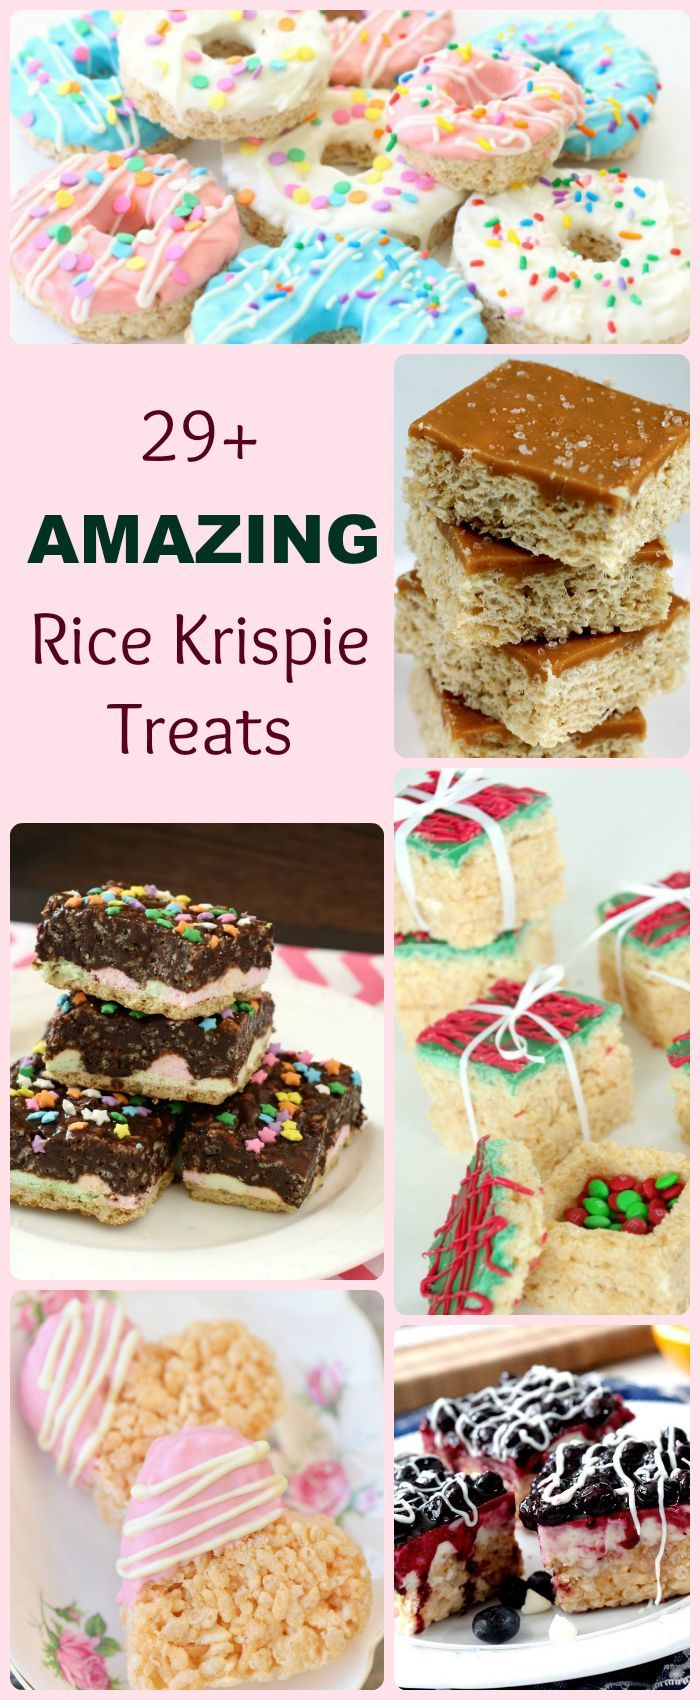 Amazing Rice Krispie Treat Recipes - all our favorite recipes in one spot! If you're a fan of the gooey marshmallow treat, you've got to see this collection! Butter With A Side of Bread